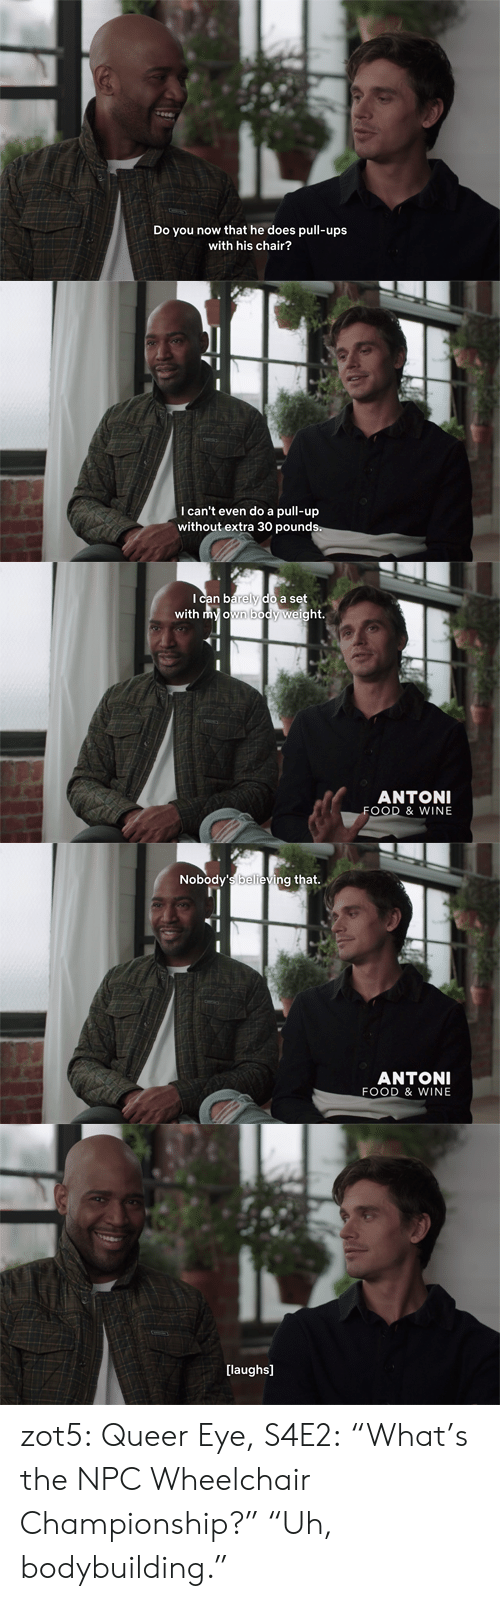 "pull up: Do y  now that he does pull-ups  with his chair?   I can't even do a pull-up  without extra 30 pounds   Ican barely do a set  with my own body weight.  ANTONI  FOOD & WINE   Nobody's believing that.  ANTONI  FOOD & WINE   [laughs] zot5:  Queer Eye, S4E2: ""What's the NPC Wheelchair Championship?"" ""Uh, bodybuilding."""